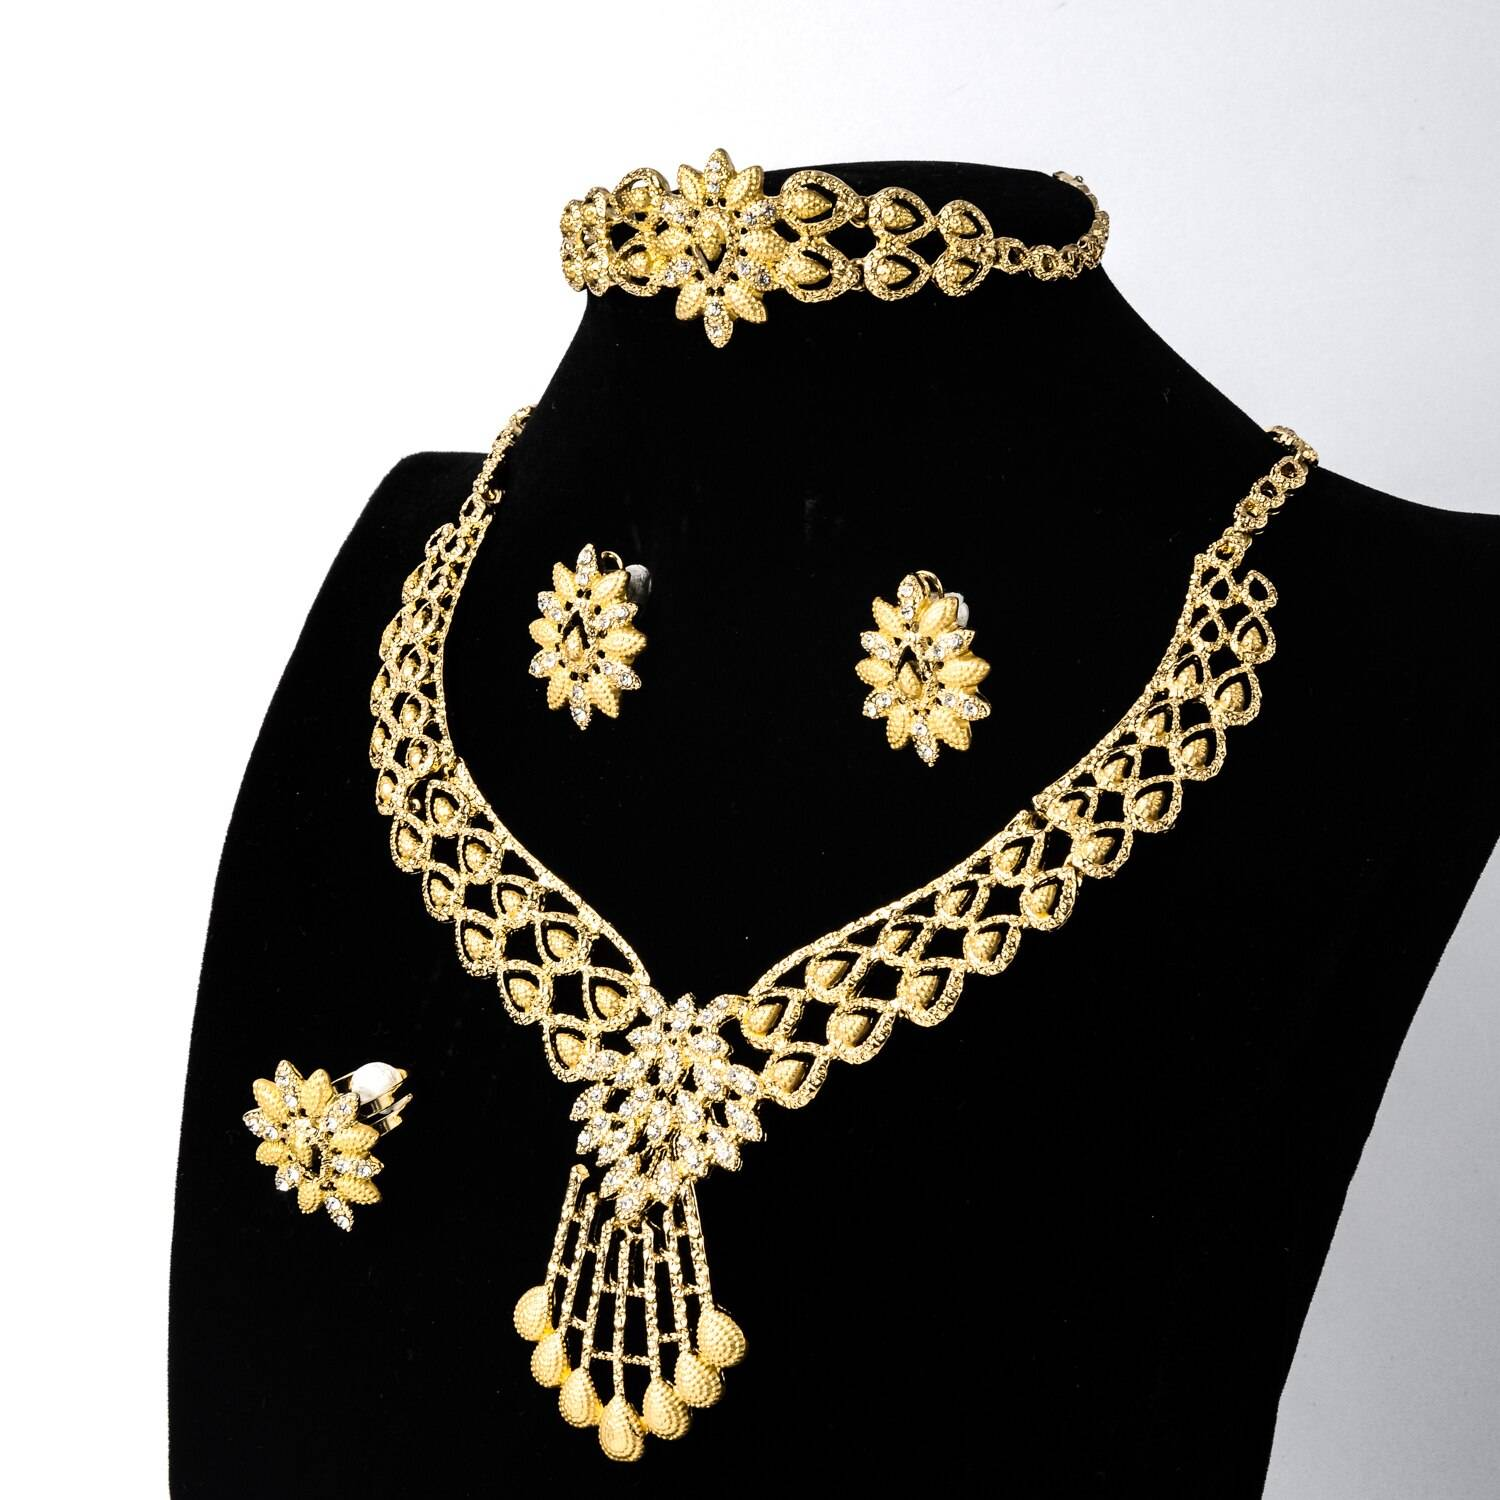 Sunny Jewelry African Dubai New Hot Sale Gold Planted Bridal Wedding Set Earrings Necklace Bangle Ring For Women Classic Party Wedding Jewellery Set 8d255f28538fbae46aeae7: Jewelry Sets